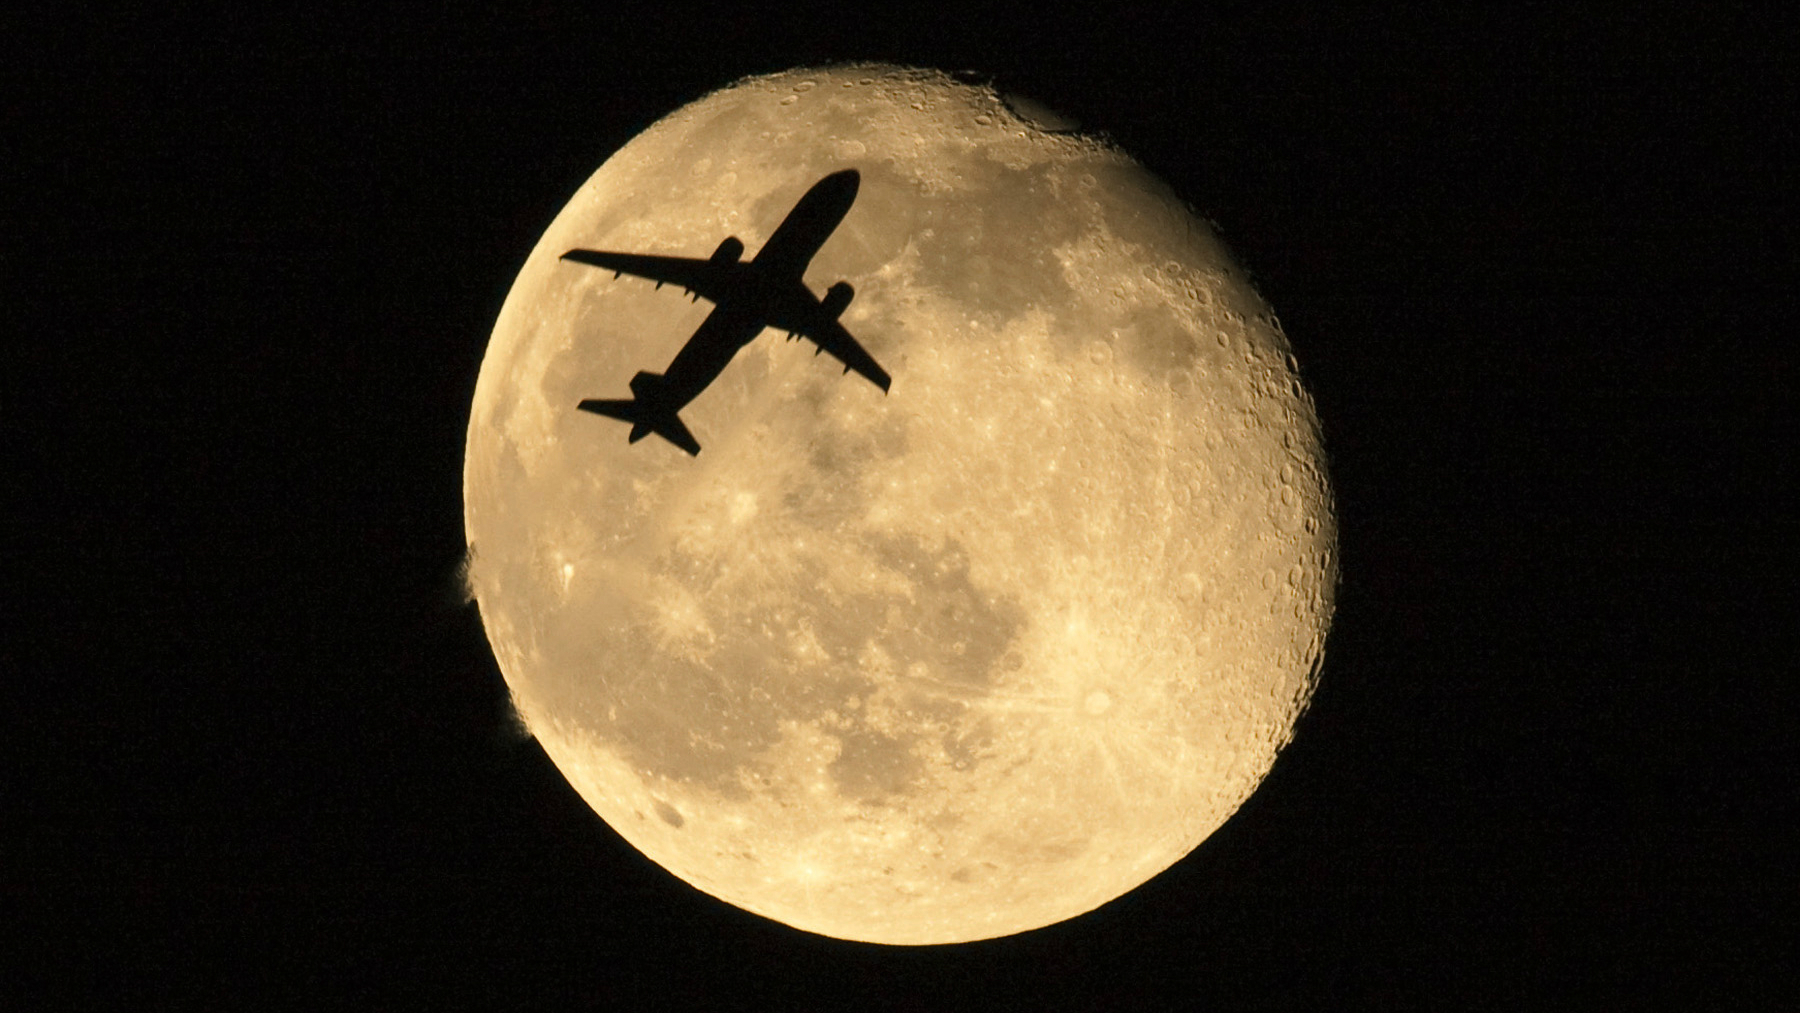 Plane in front of the moon.